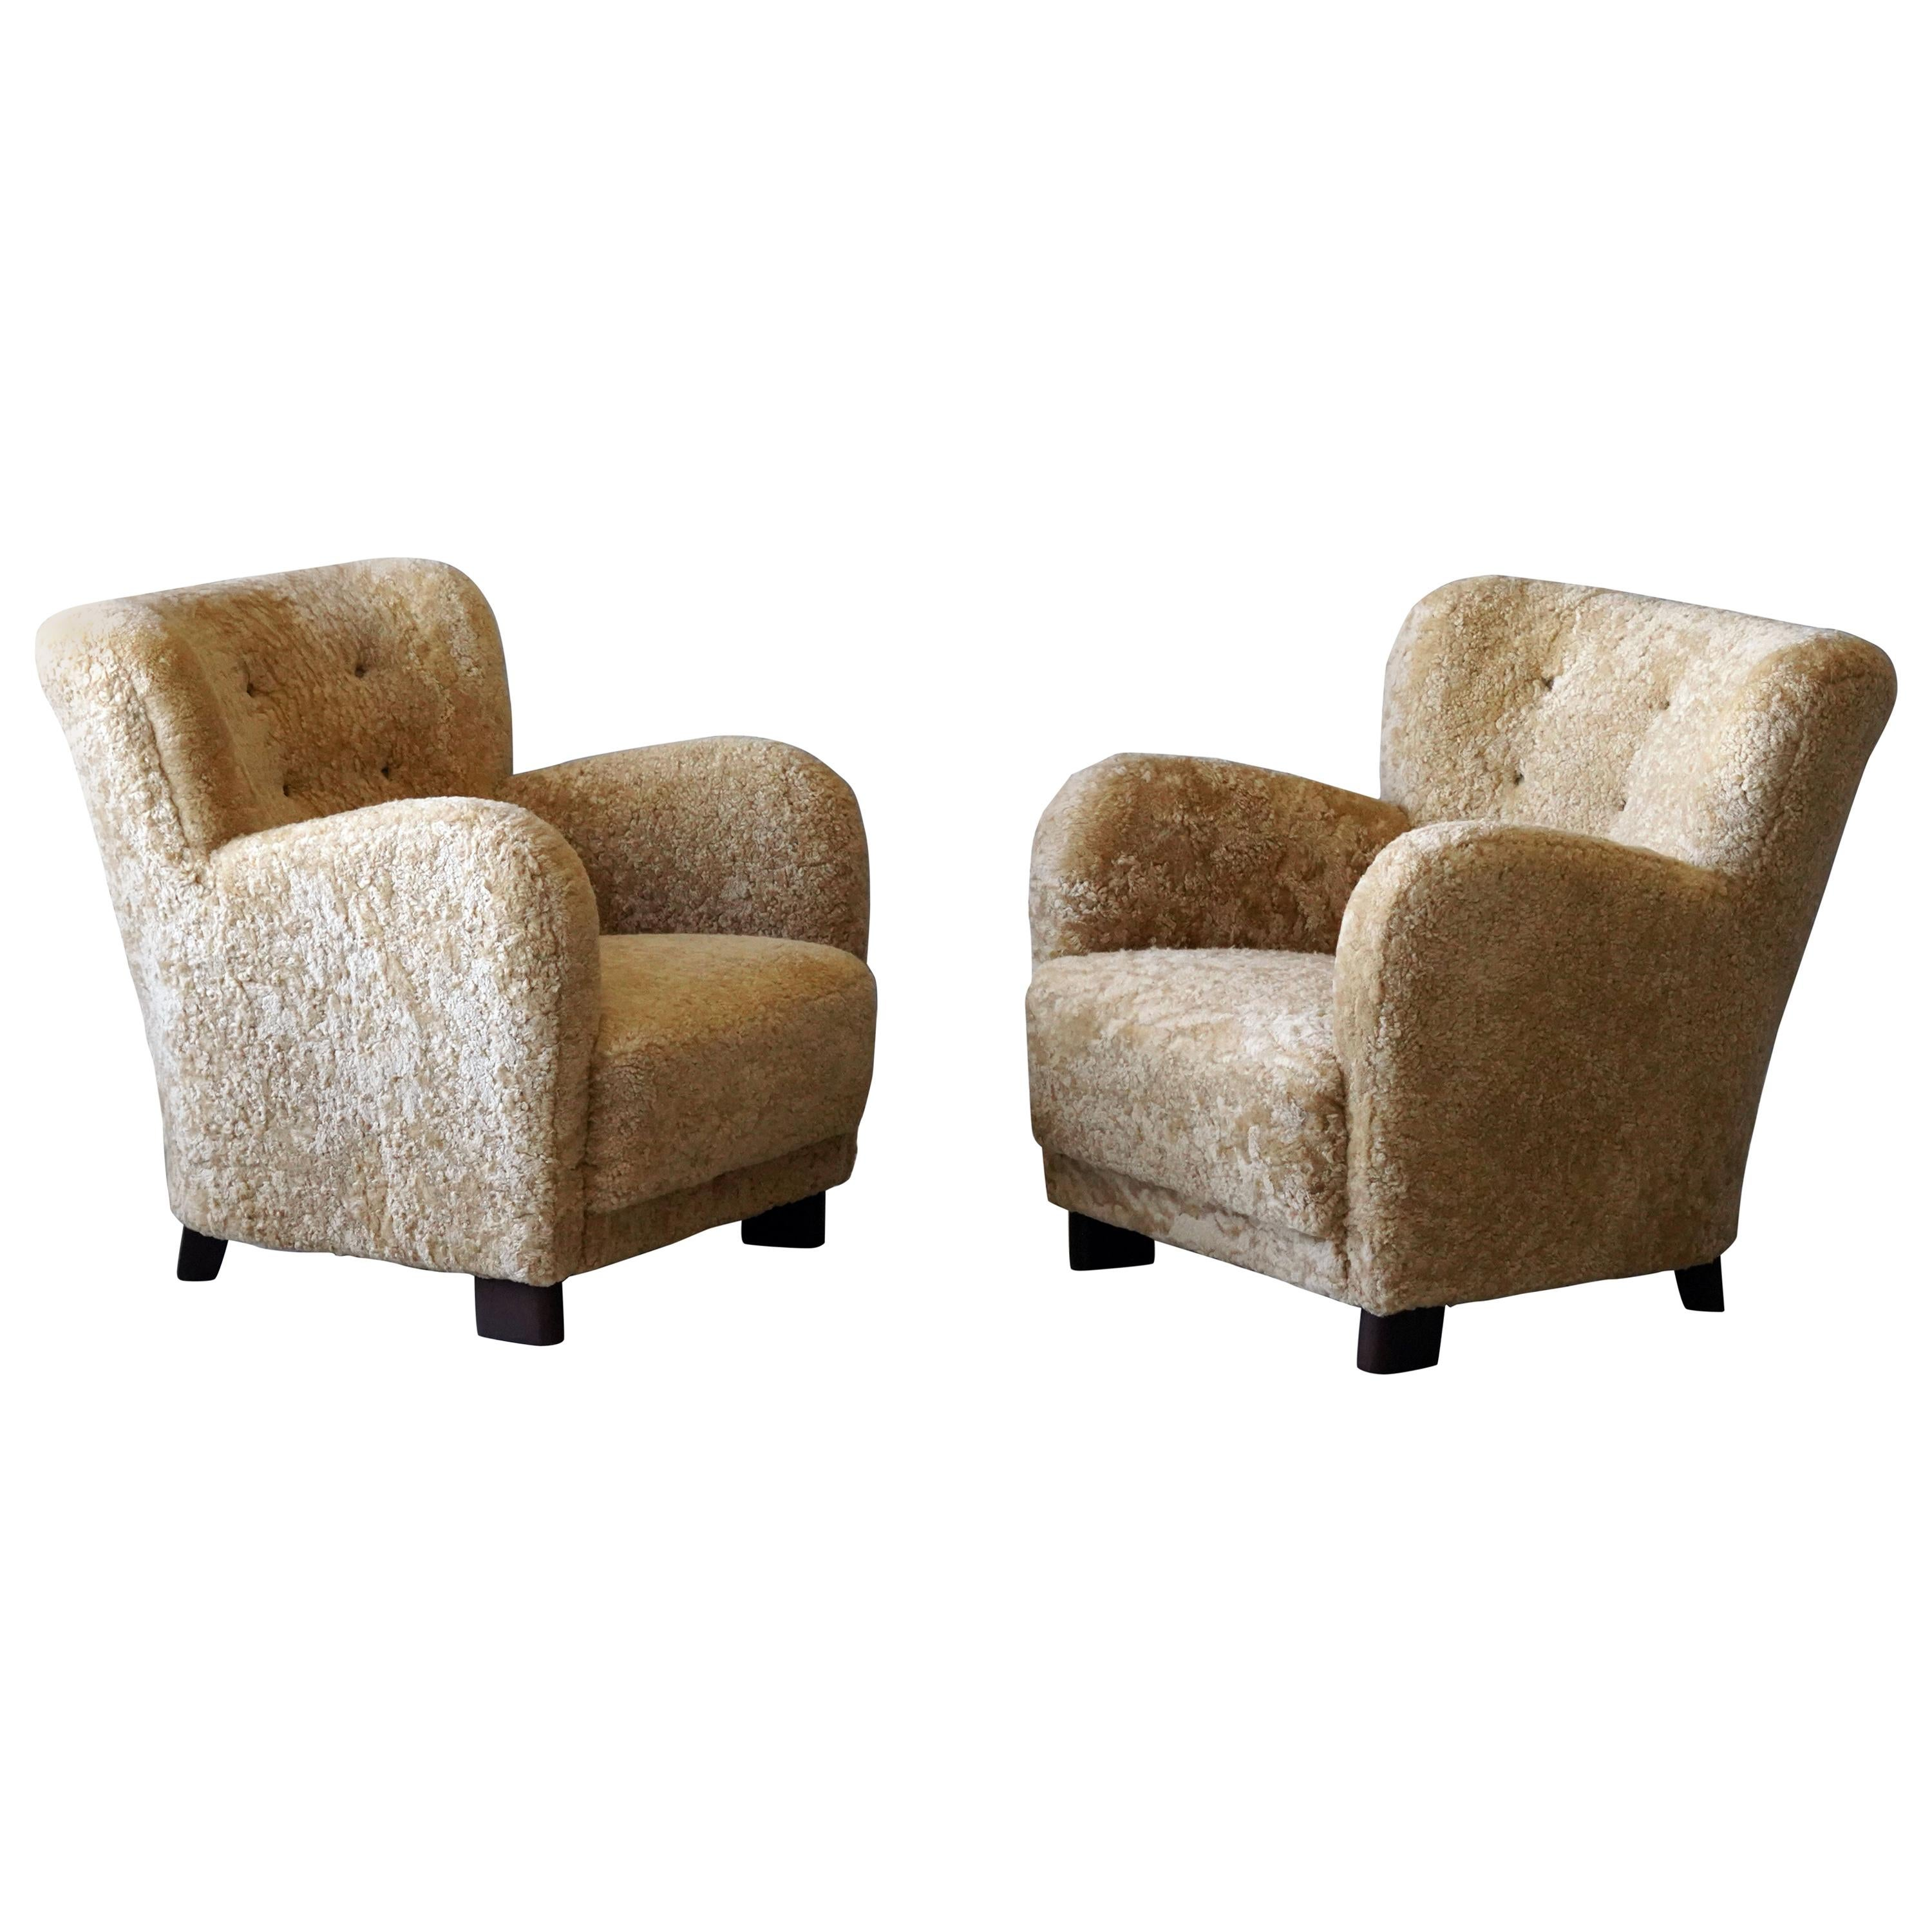 Fritz Hansen 'Attributed' Lounge Chairs, Sheepskin, Stained Wood, Denmark, 1940s